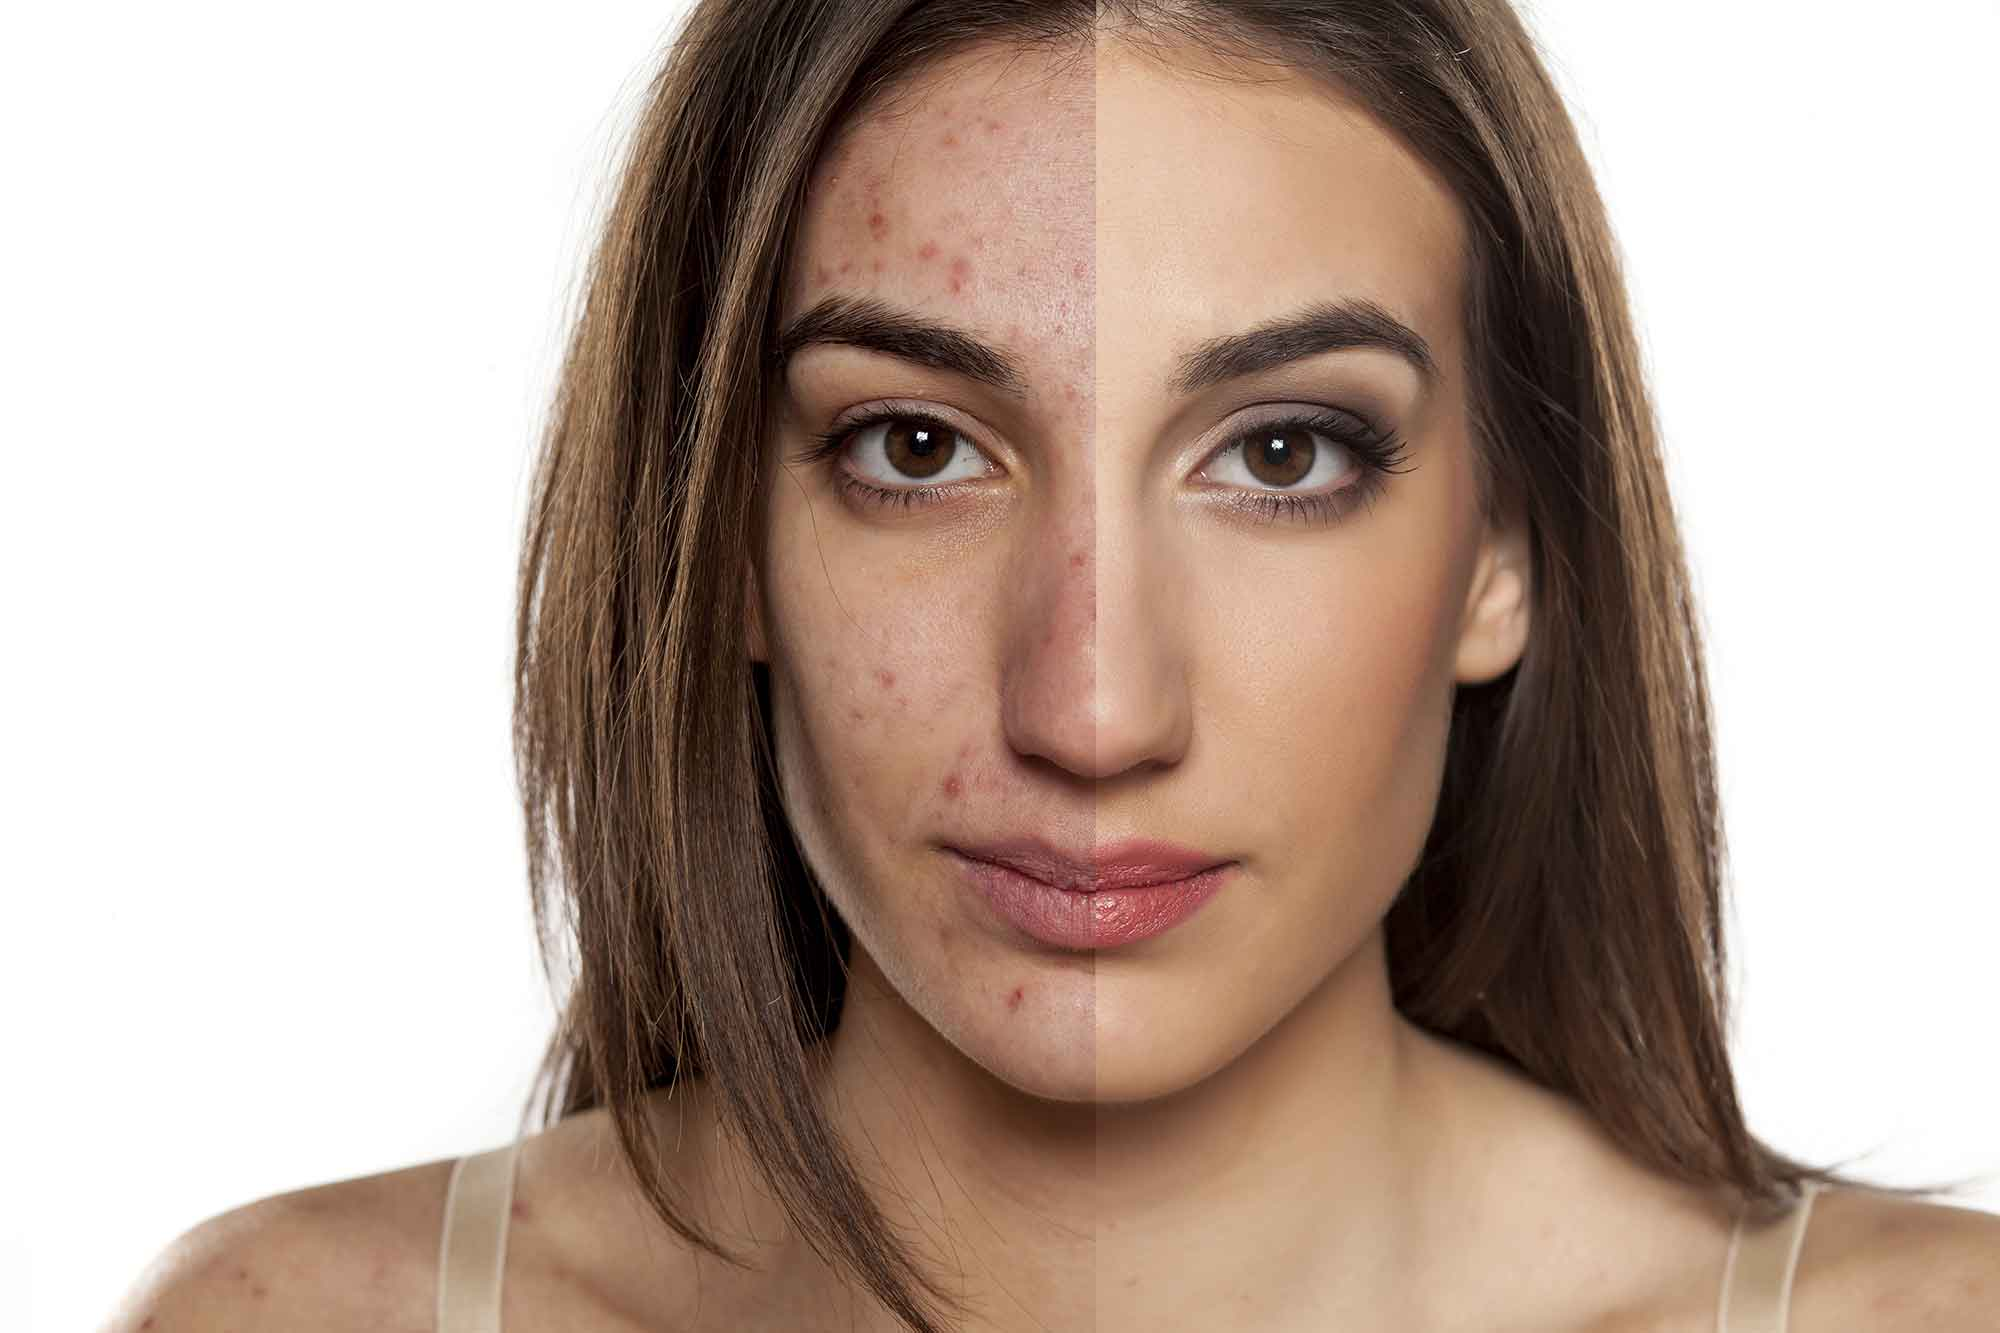 Acne Scarring Treatment at MySkyn Clinic in Bradford